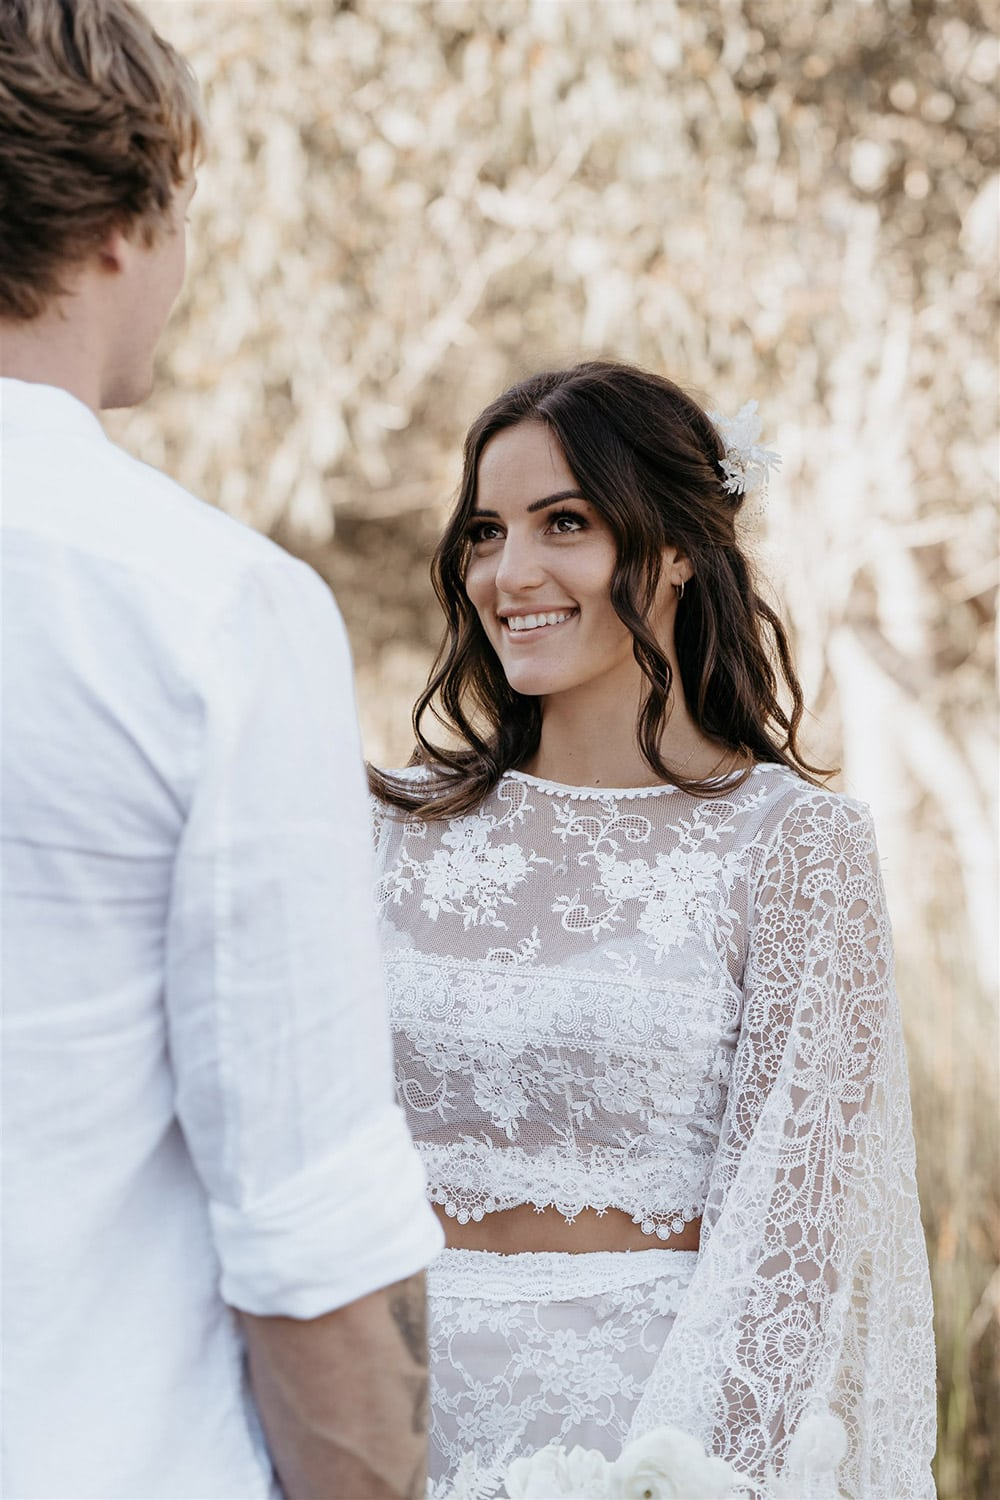 Outdoor Festival Bohemian Wedding Inspiration   The bride wears a white two piece lace boho wedding dress with a long sleeved cropped bodice and tiered maxi skirt. Her hair is worn in a romantic half up half down style with loose waves and a cascading fresh floral hairpiece.   Photography: Shae Estella Photo